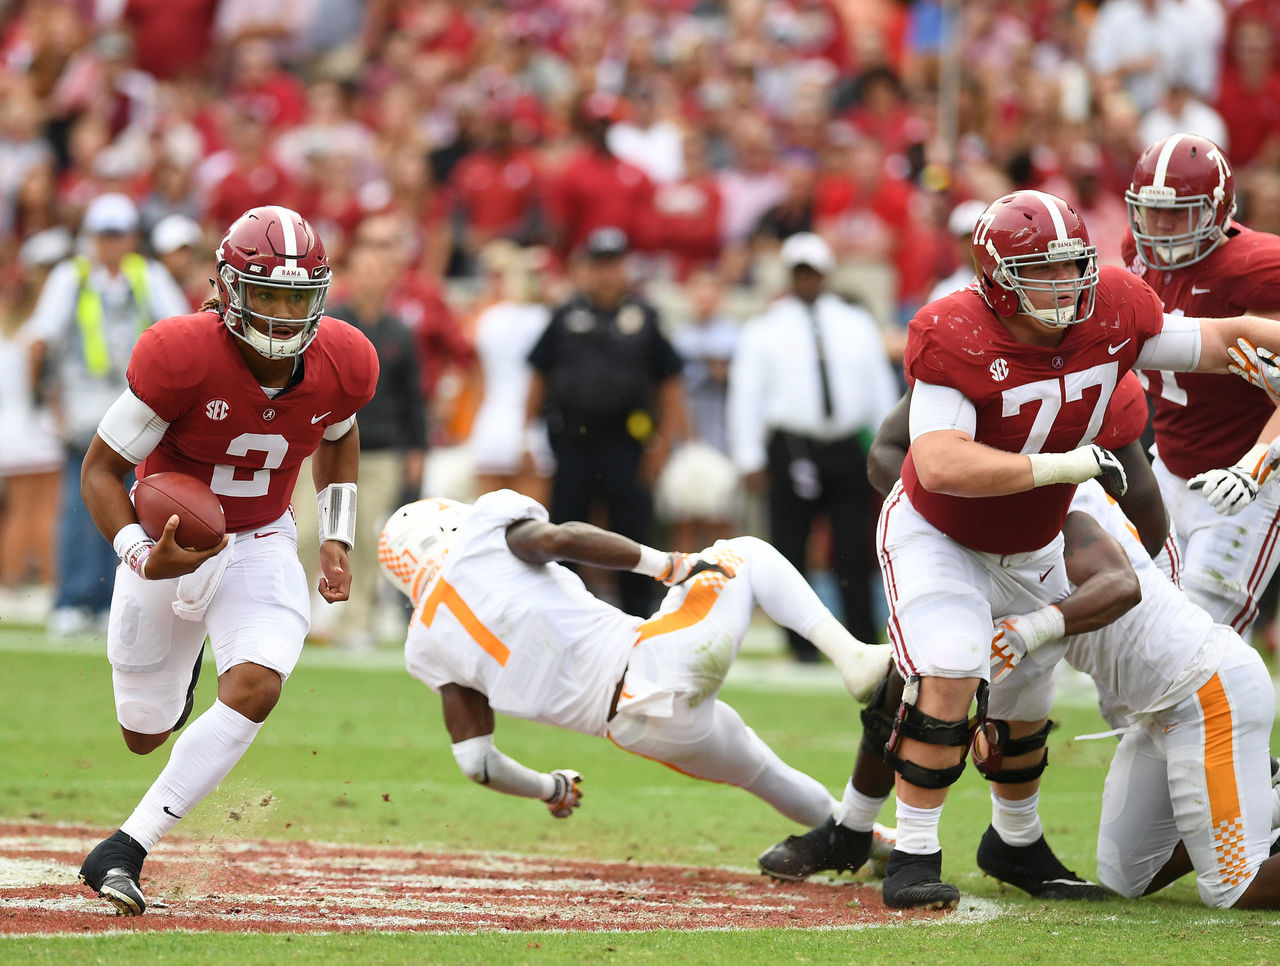 Cropped 2017 10 21t222015z 1294127016 nocid rtrmadp 3 ncaa football tennessee at alabama